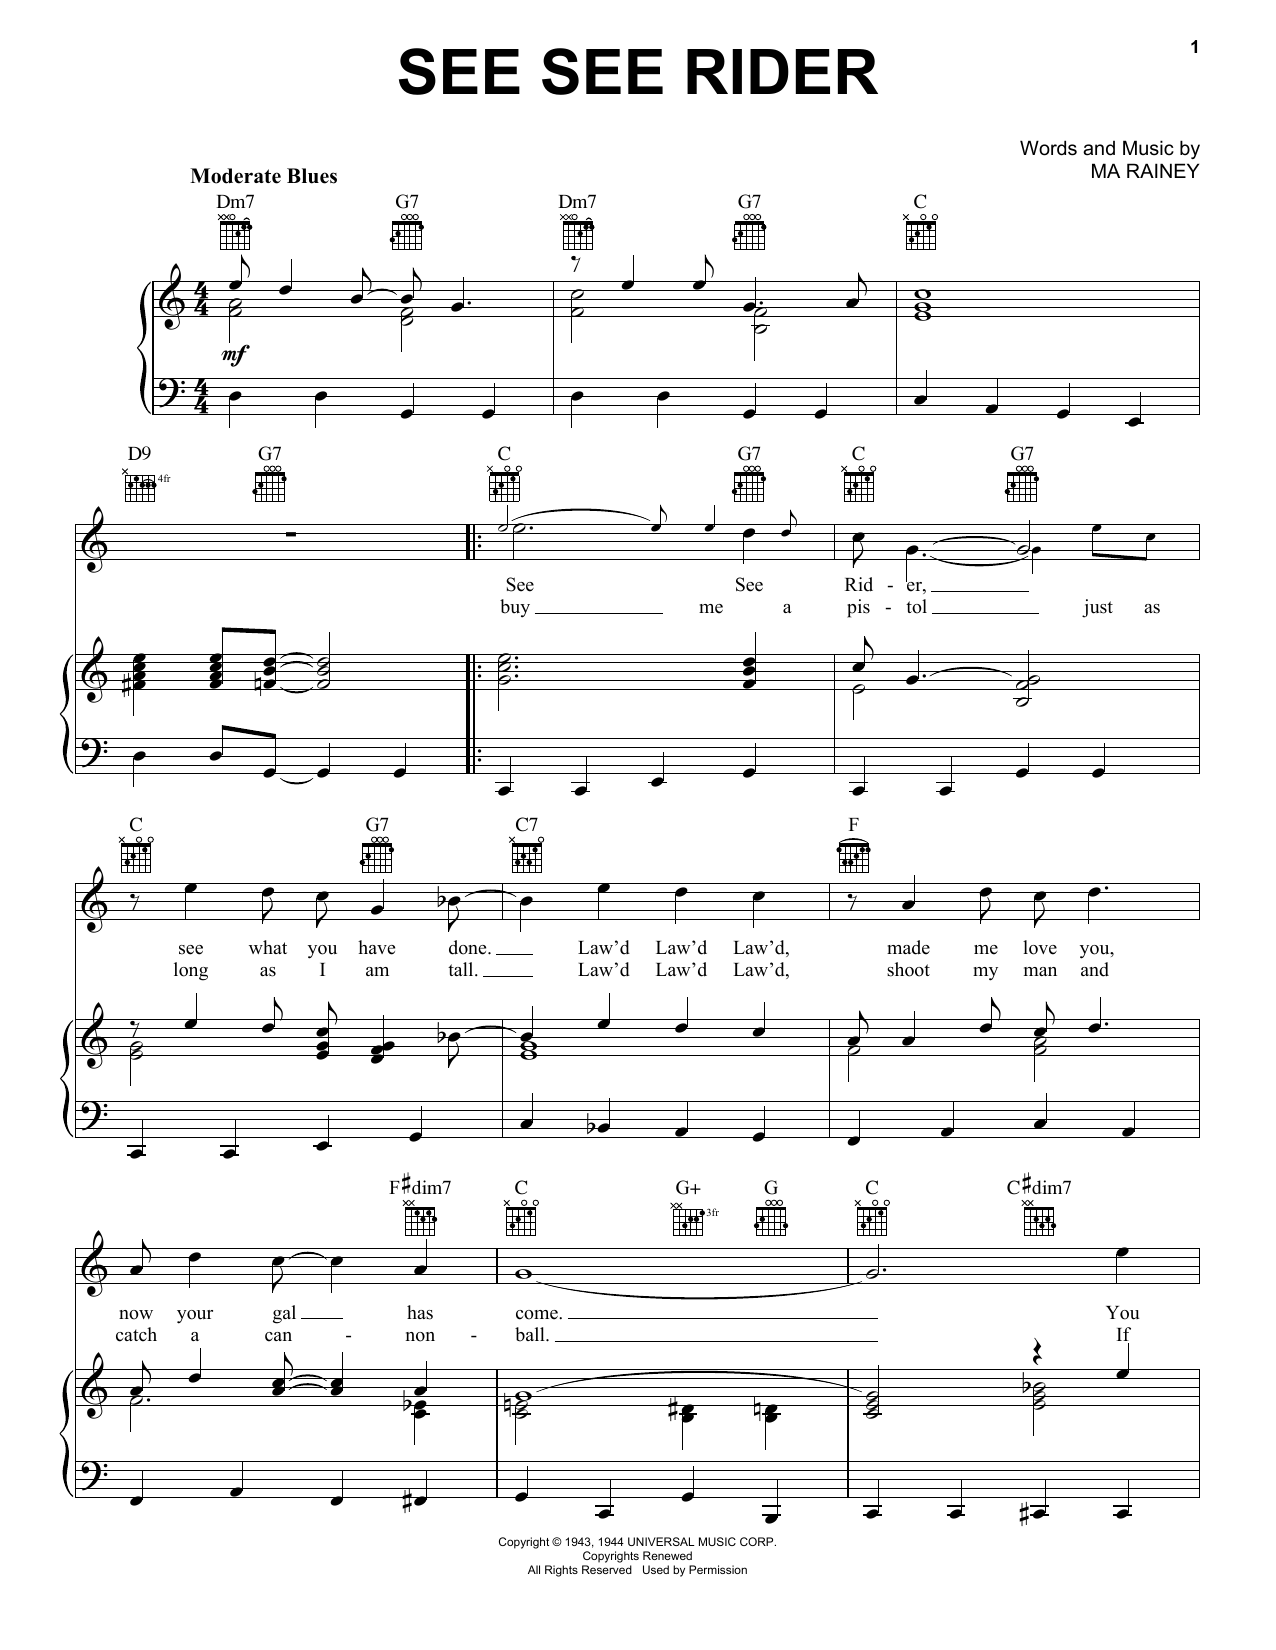 See See Rider sheet music for voice, piano or guitar by Ma Rainey